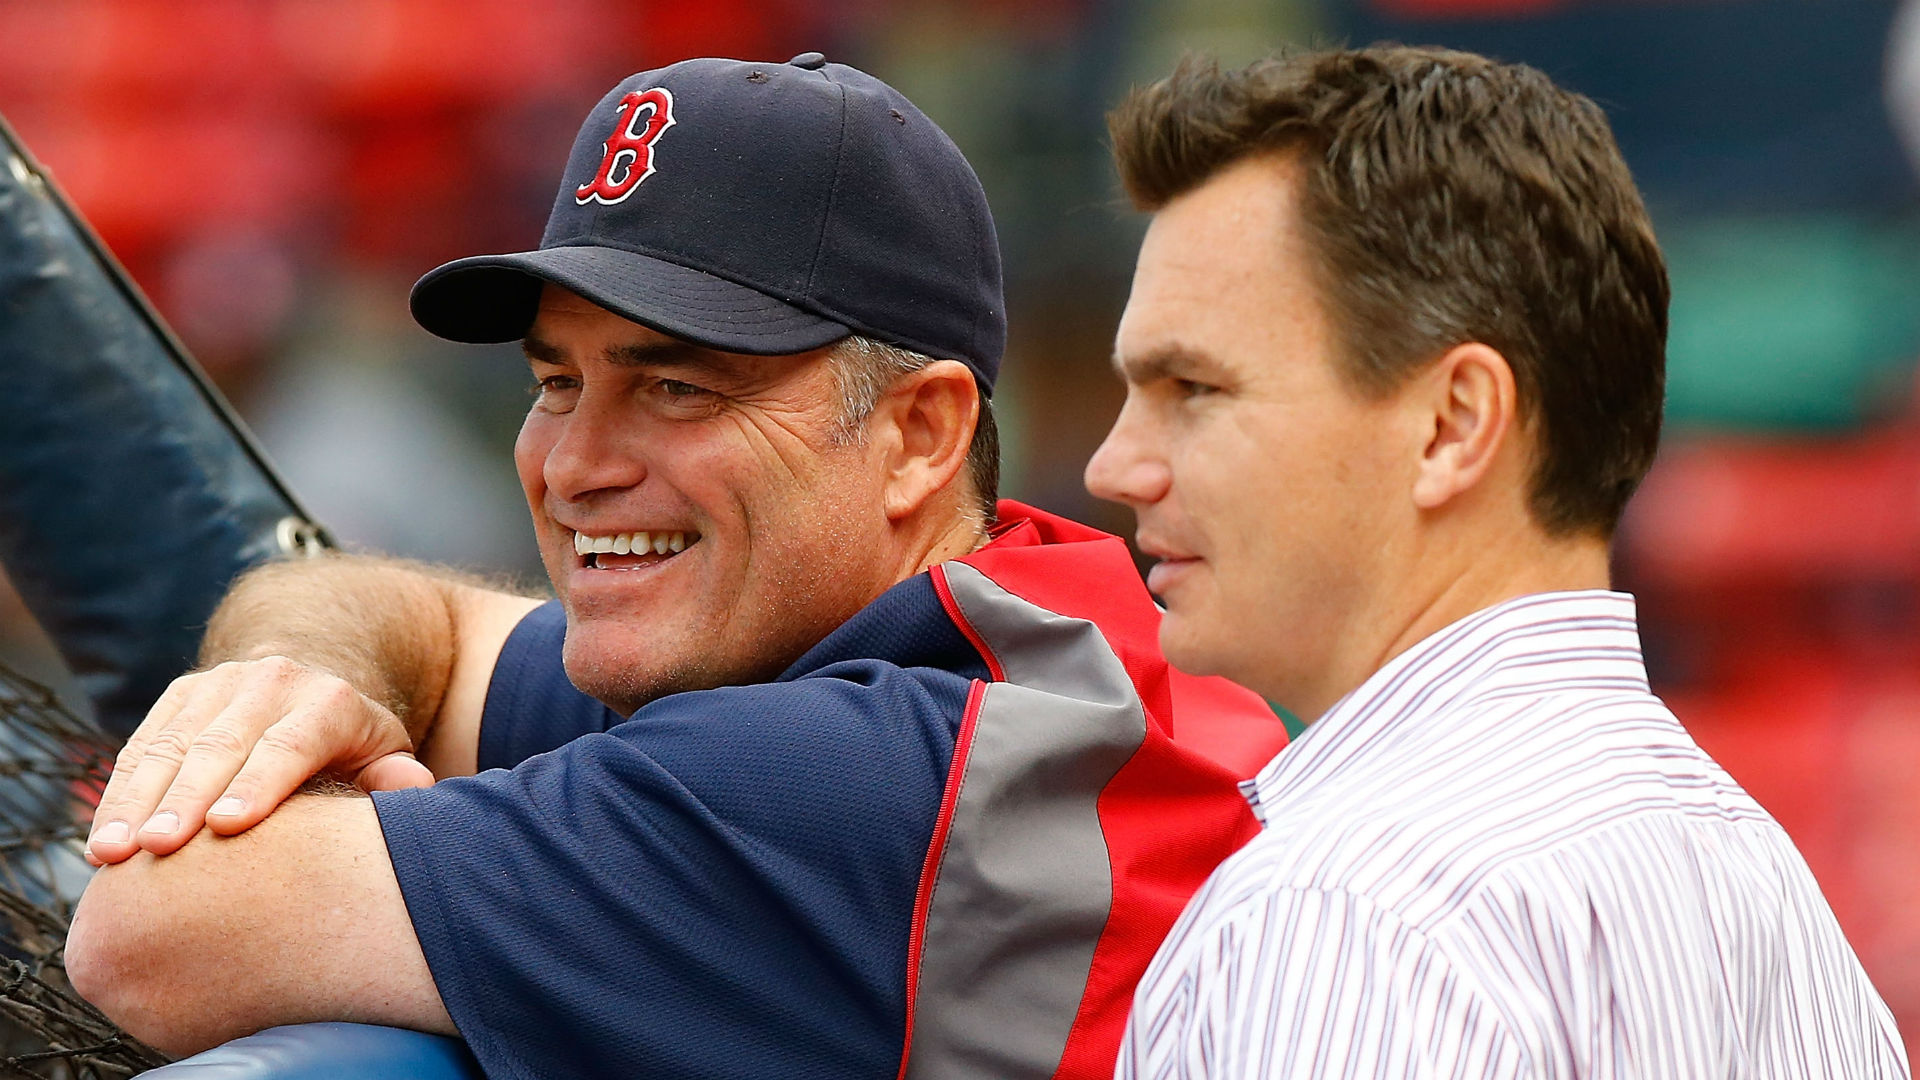 john-farrell-ben-cherington-022115-getty-ftr-us.jpg